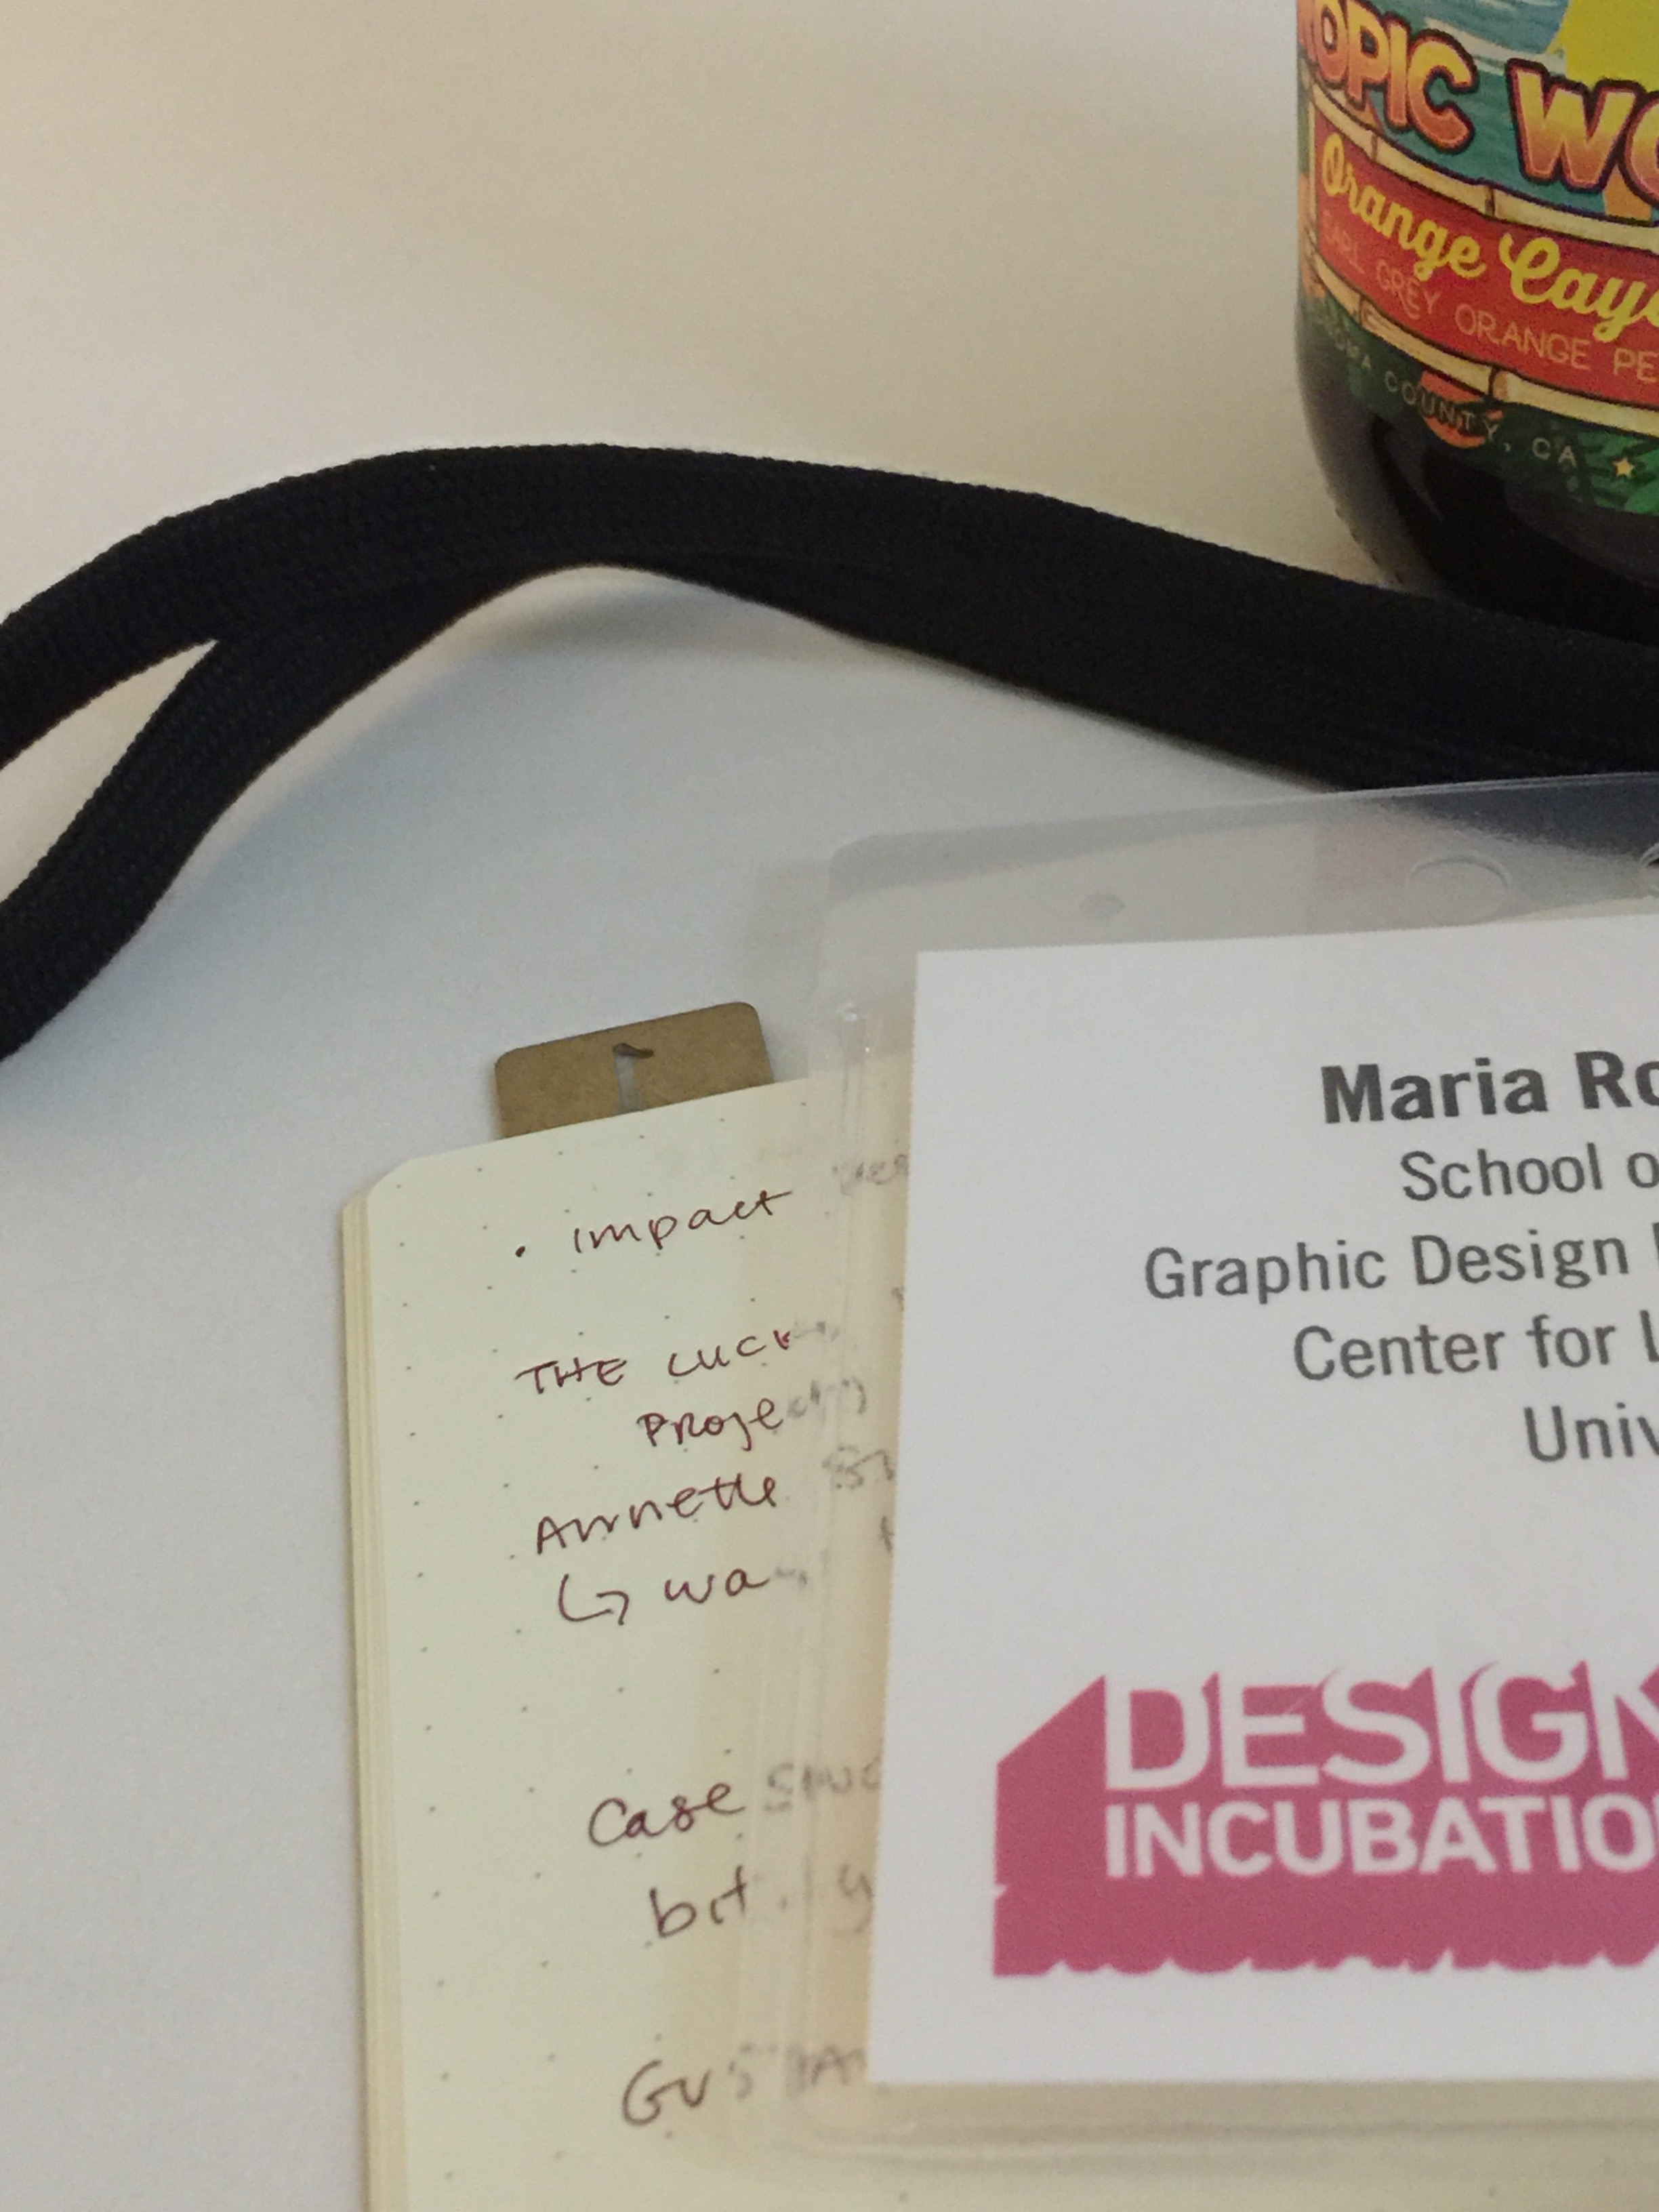 Design Incubation Nametag